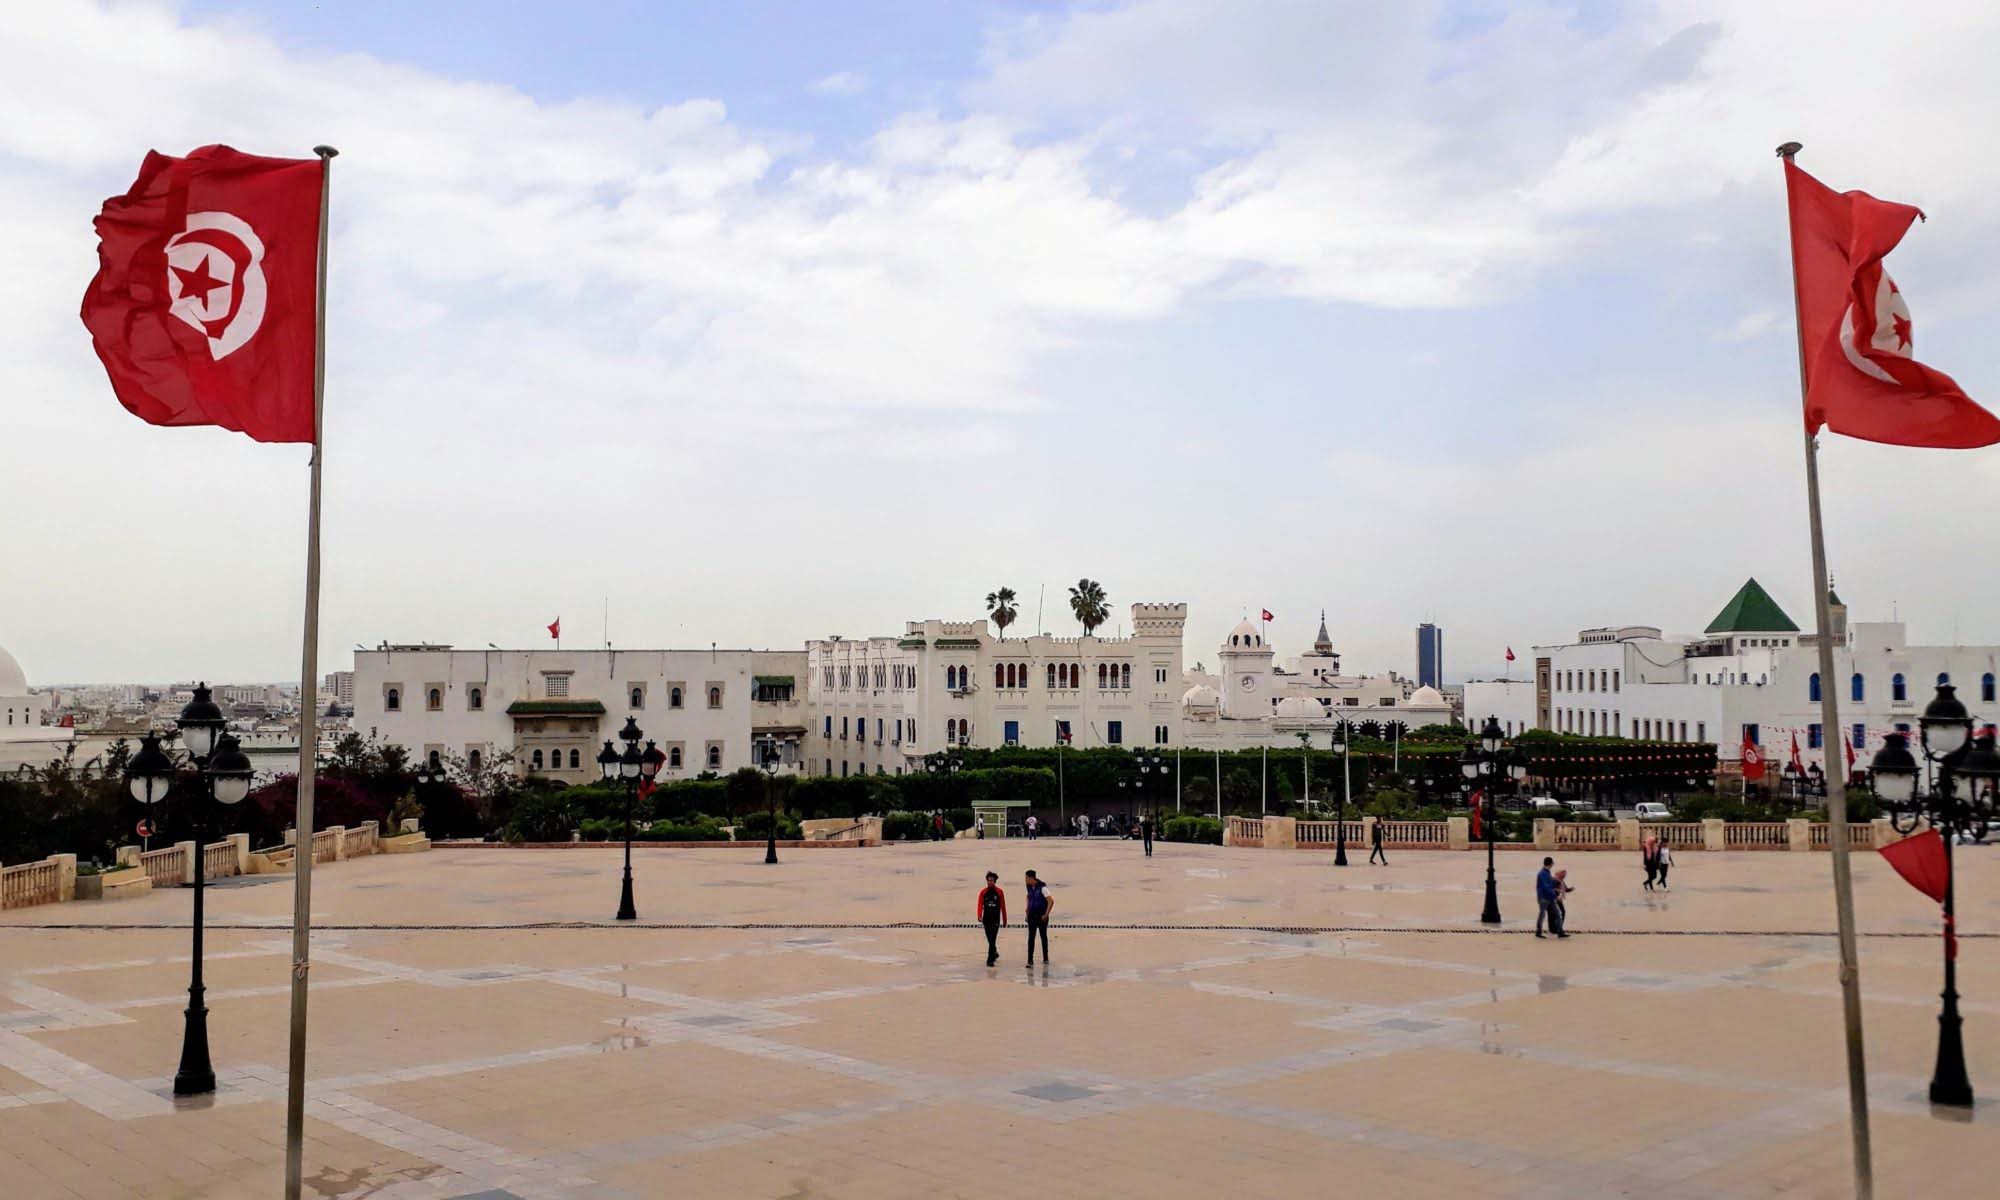 Tunis: View from the Place du Gouvernement to the medina